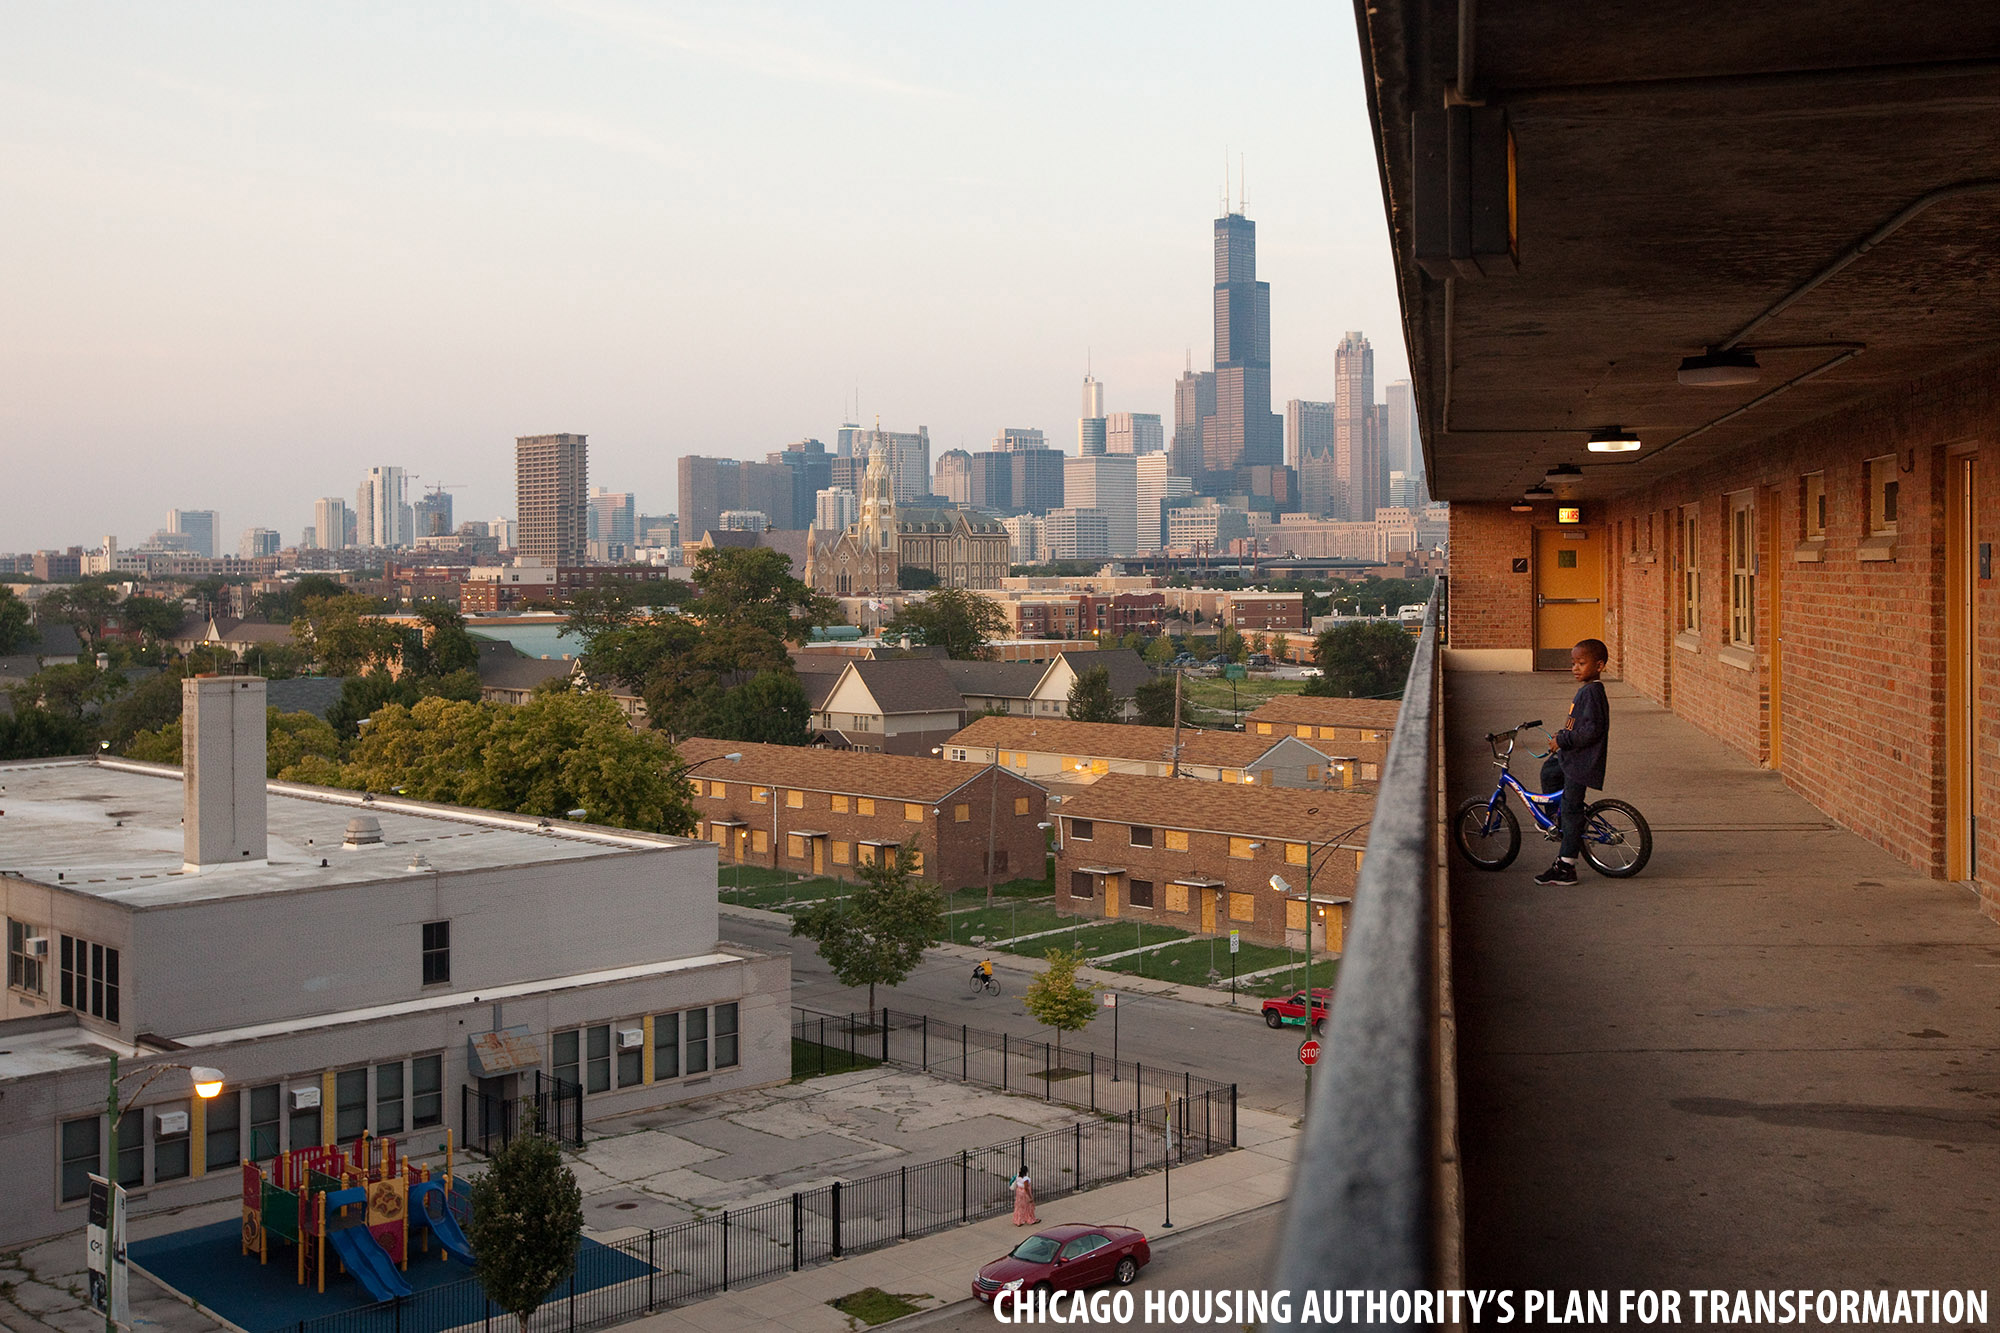 Chicago Housing Authority's Plan for Transformation